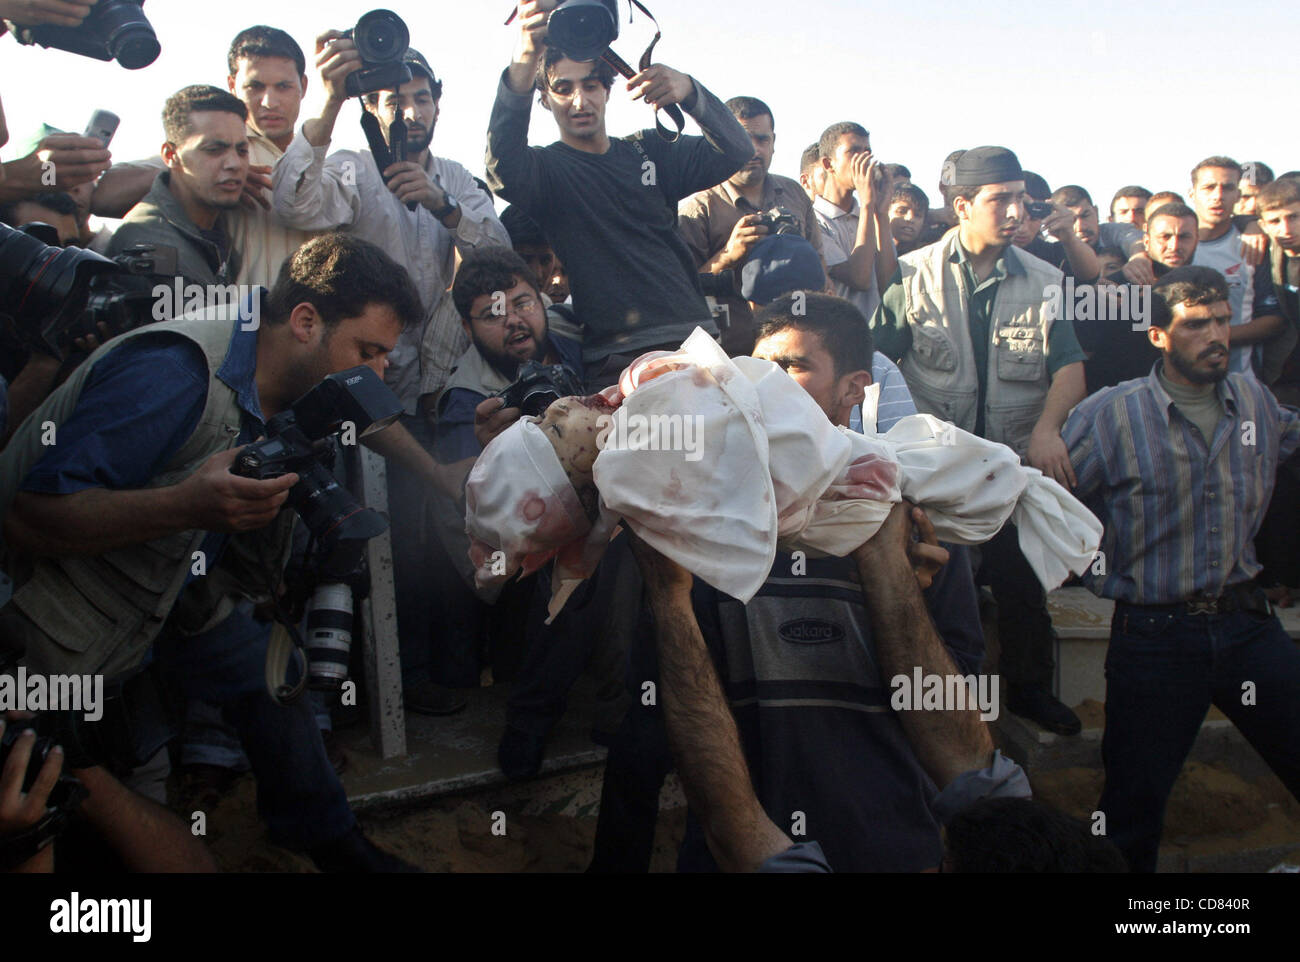 Apr 28, 2008 - Beit Lahia, Gaza - Mourners bury the bodies of two Palestinian children from Abu Maateq family at - Stock Image